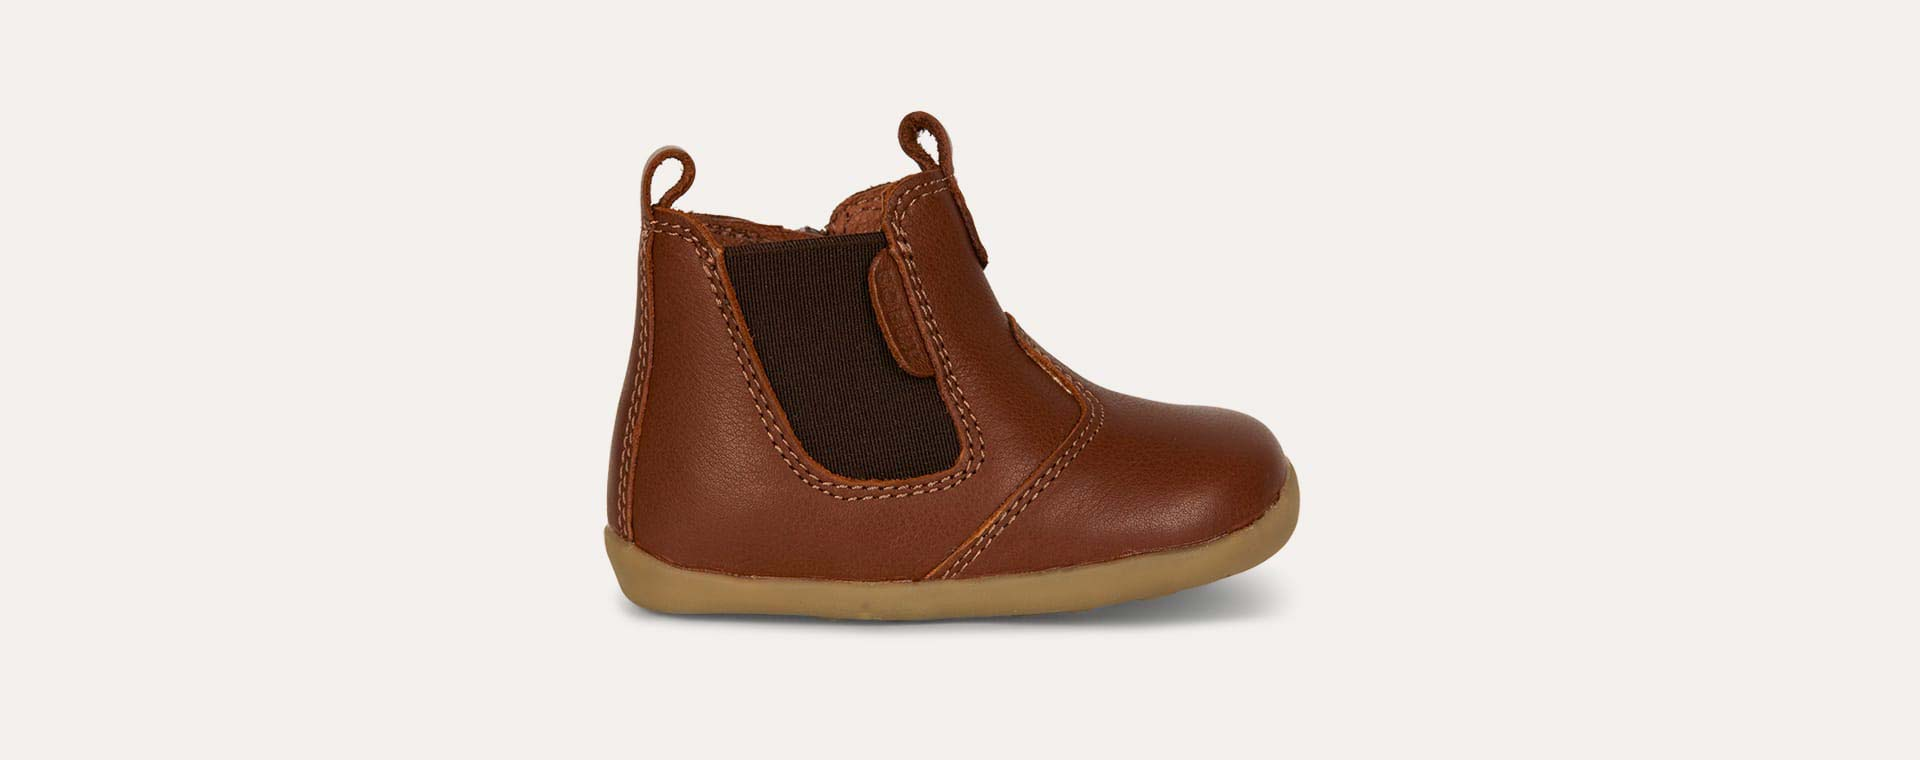 Toffee Bobux Jodphur Step-Up Boot